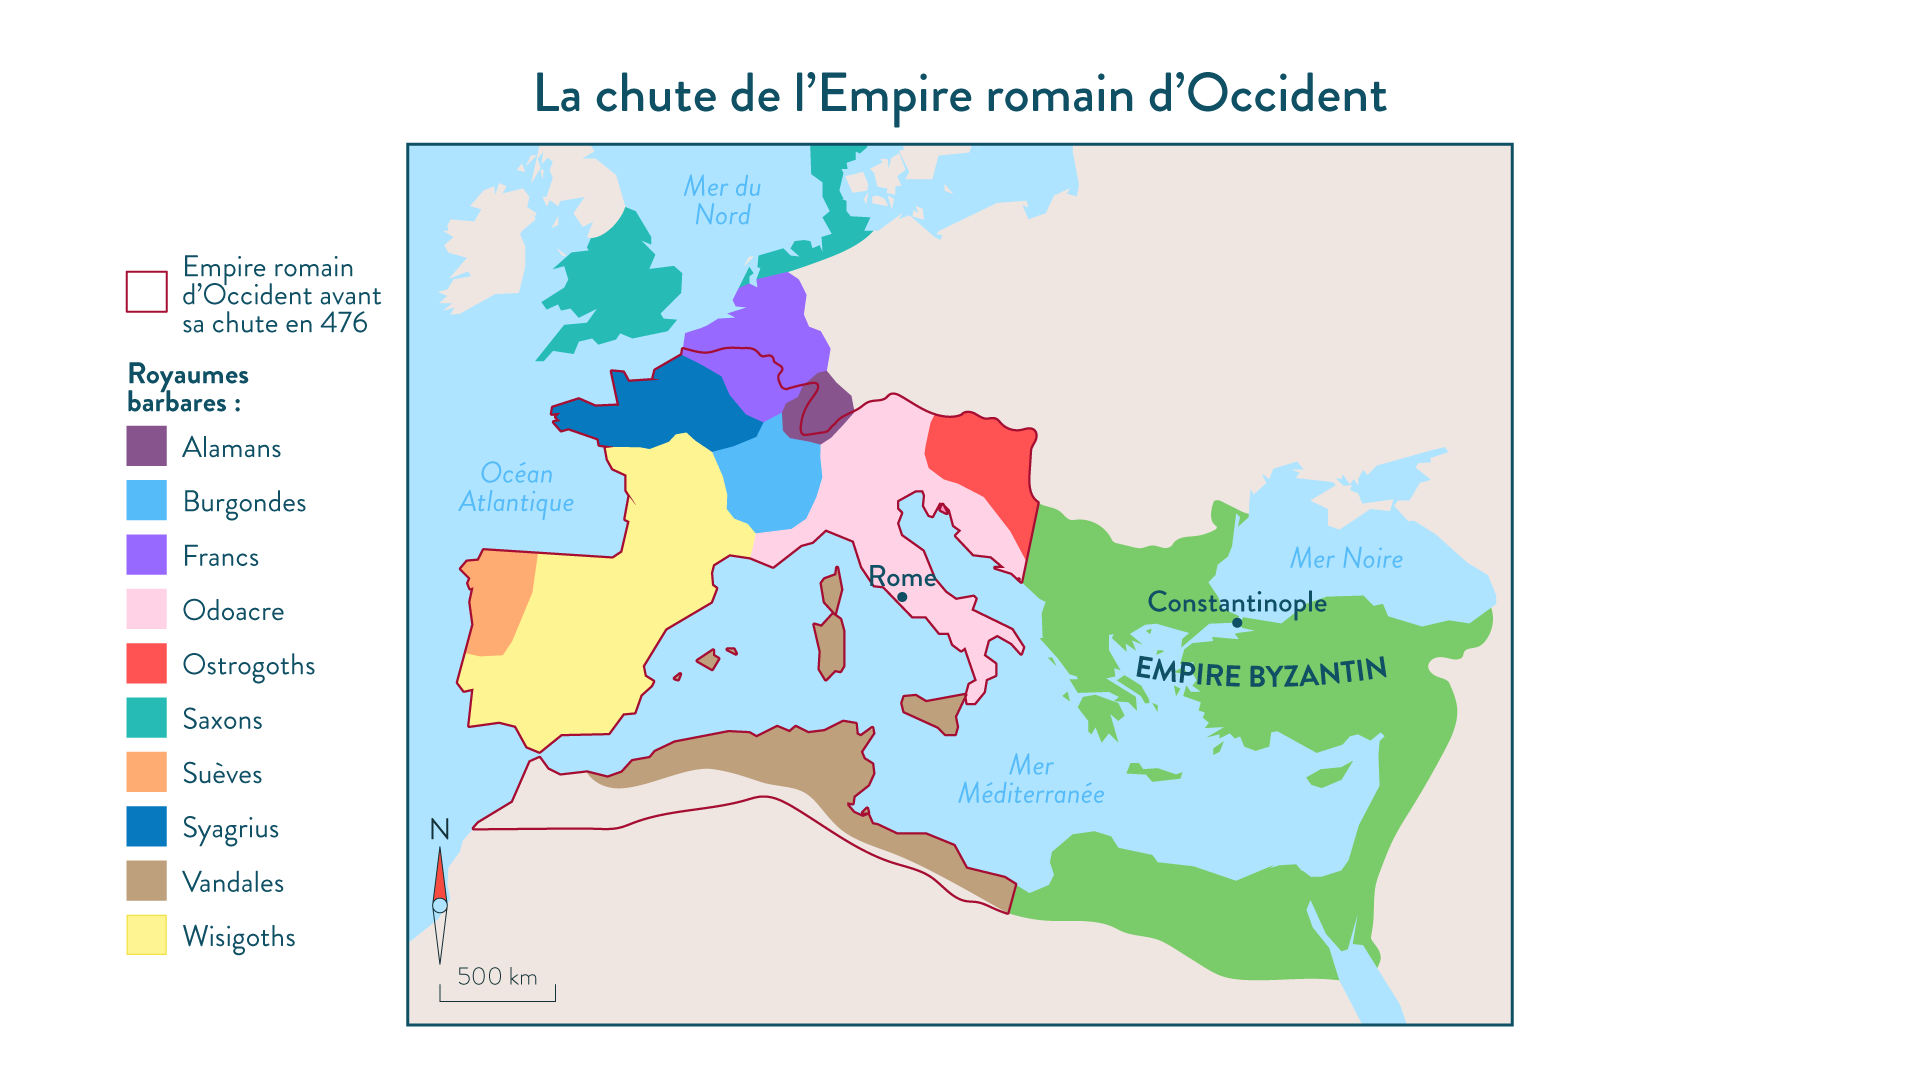 La chute de l'Empire romain d'Occident-5e-Histoire